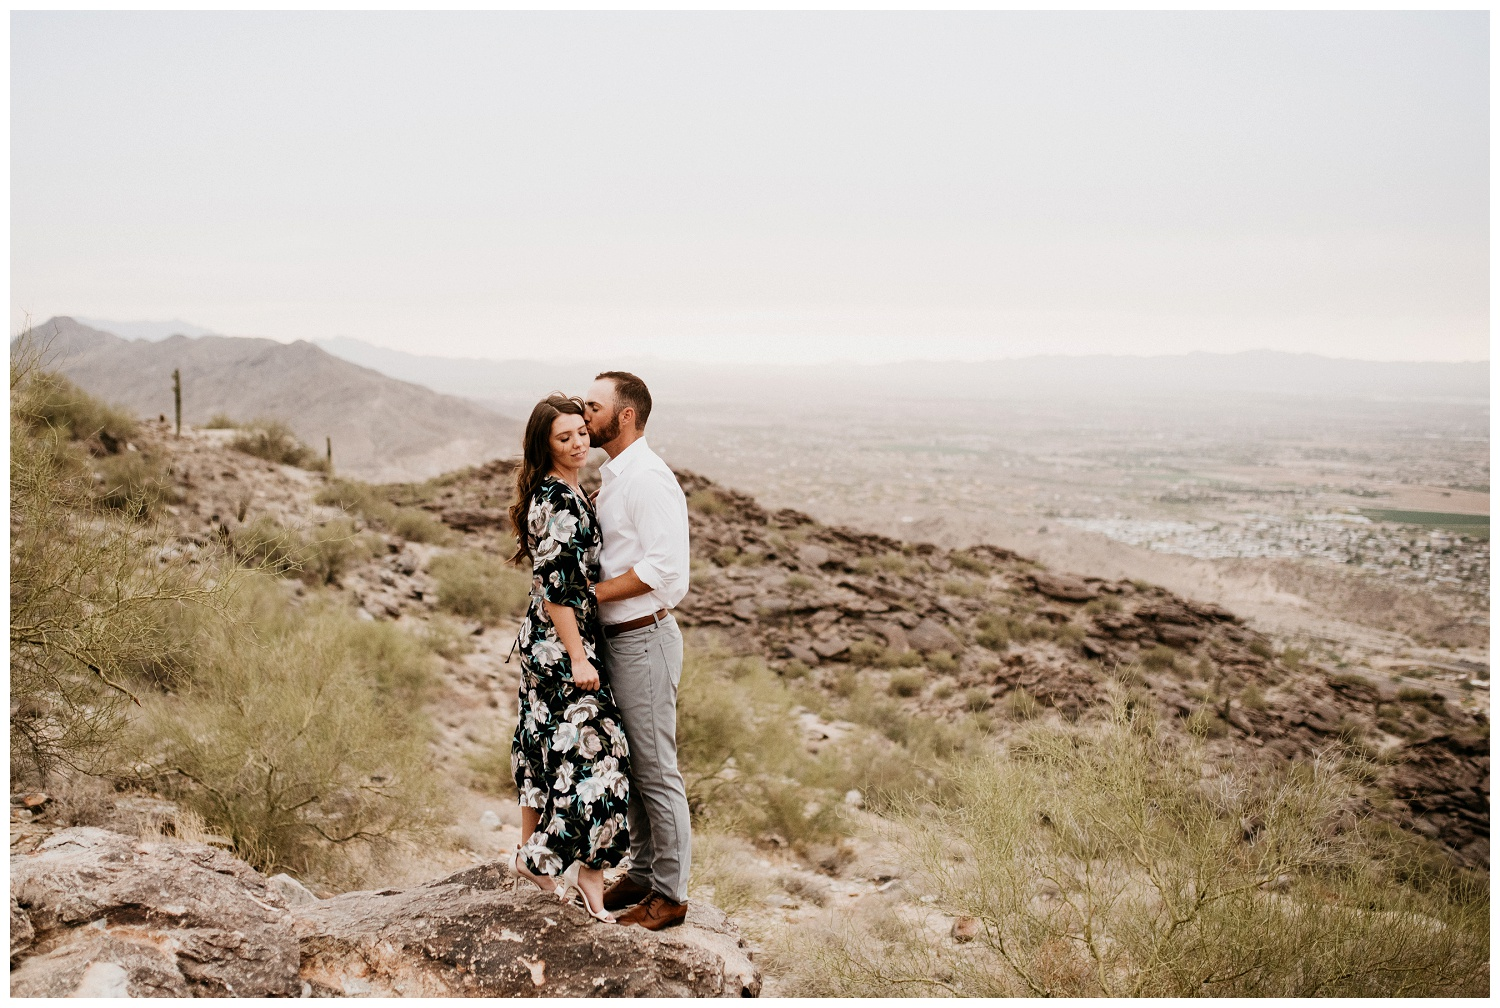 South Mountain Engagement Session Phoenix Wedding Photographer Ashtyn Nicole Photo 11